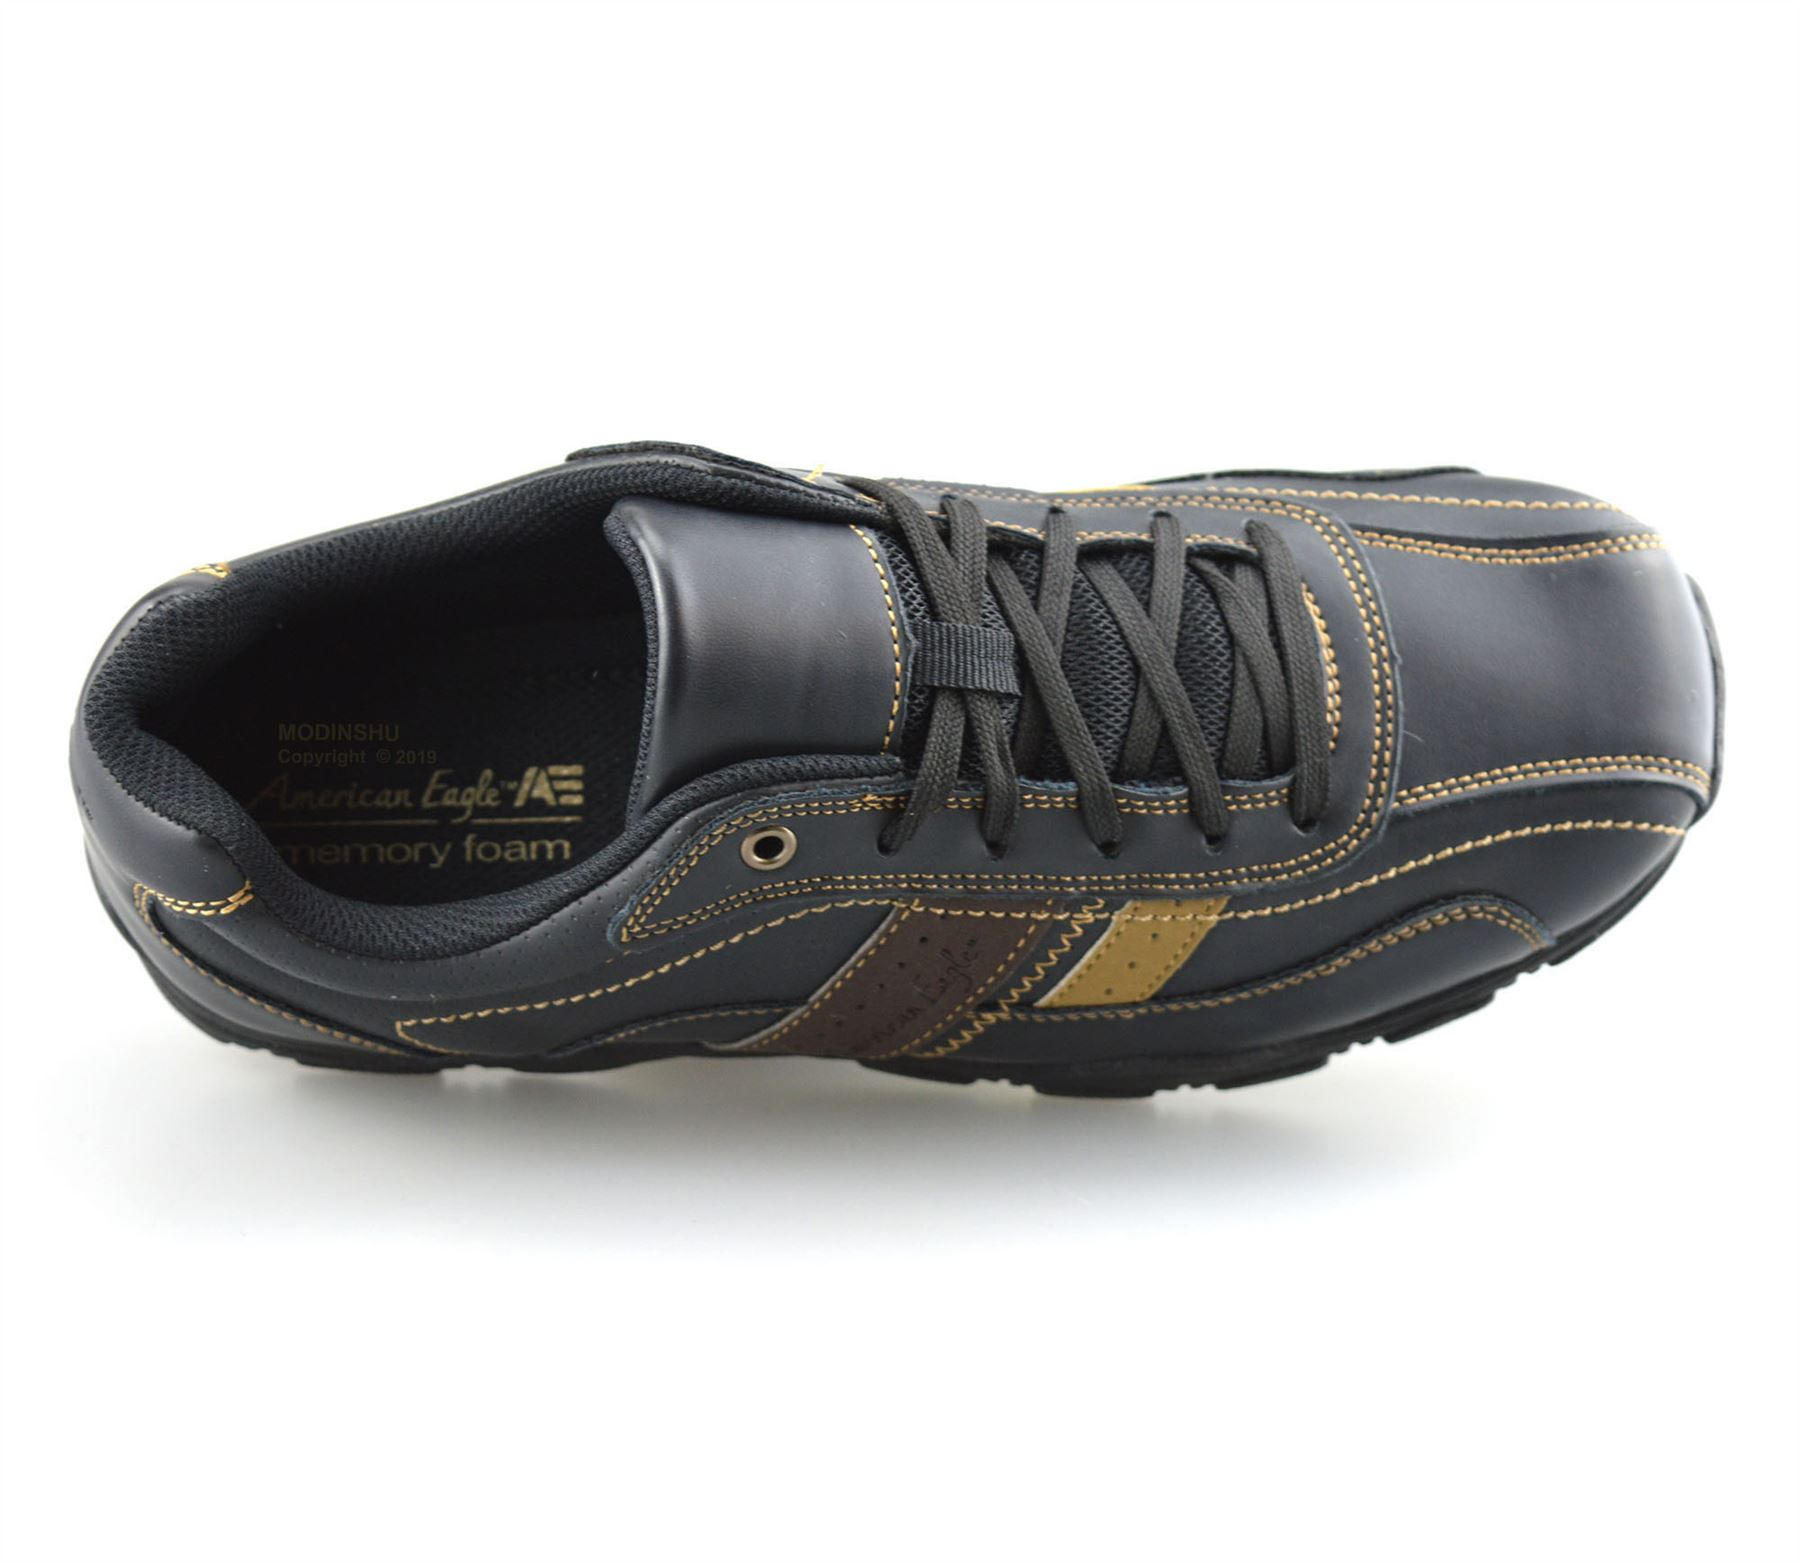 Mens-Casual-Memory-Foam-Walking-Hiking-Moccasin-Driving-Boat-Trainers-Shoes-Size thumbnail 12